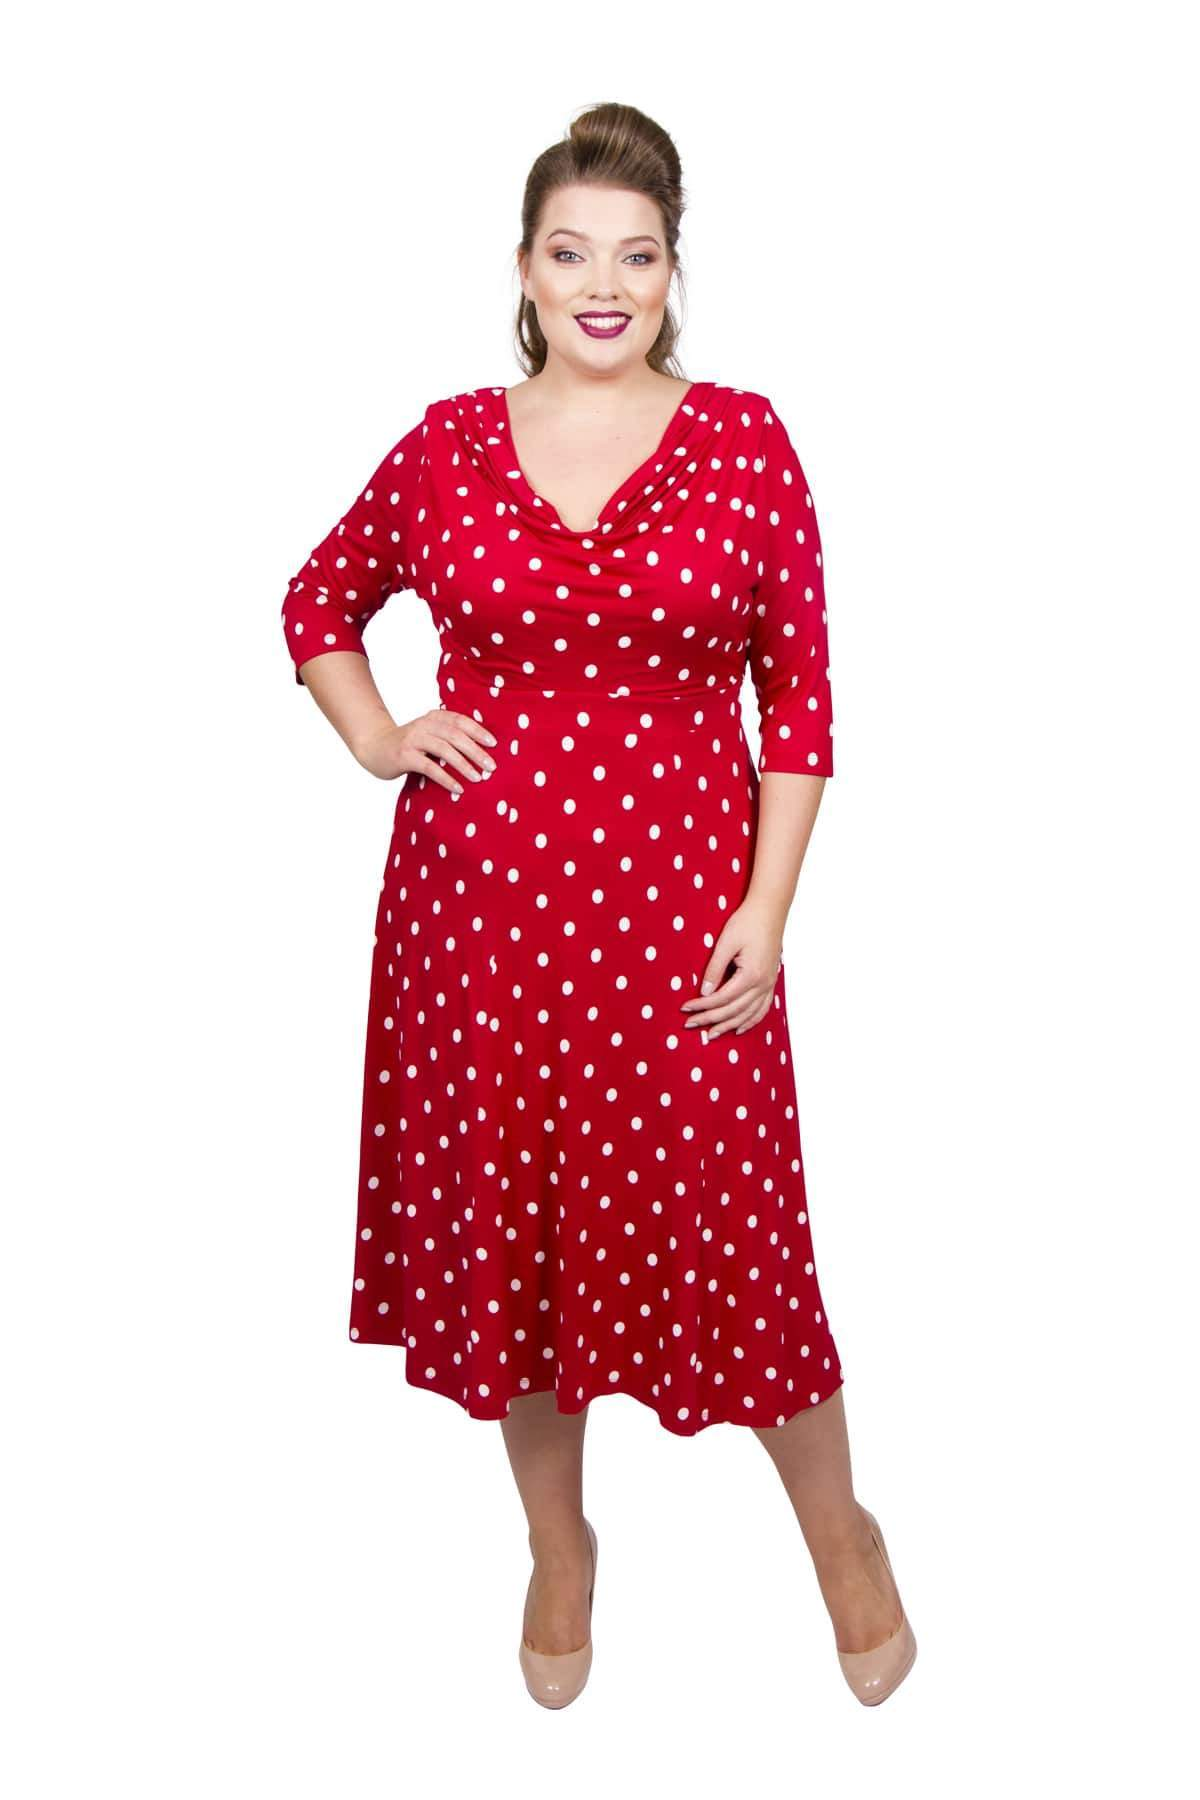 1940s Plus Size Dresses | Swing Dress, Tea Dress Lollidot Cowl Neck 40s Dress - SCARLETWHI  12 £60.00 AT vintagedancer.com